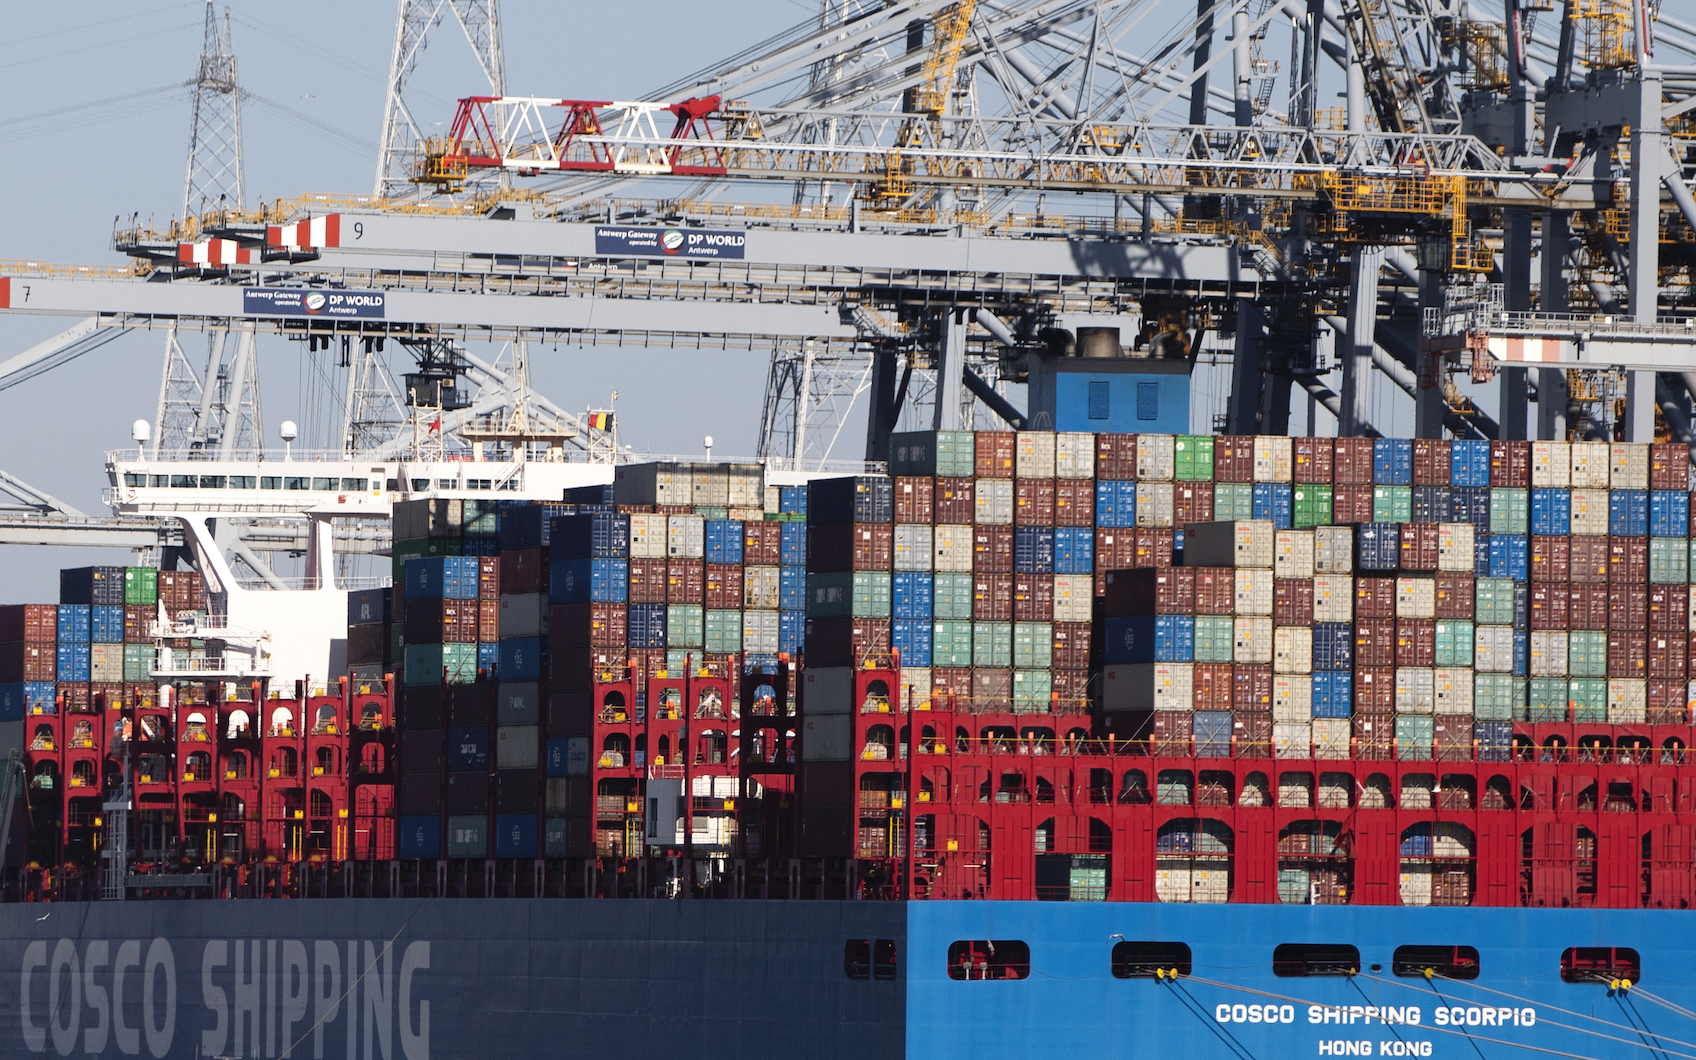 Shipping containers are offloaded from a vessel in the Port of Antwerp, Belgium.